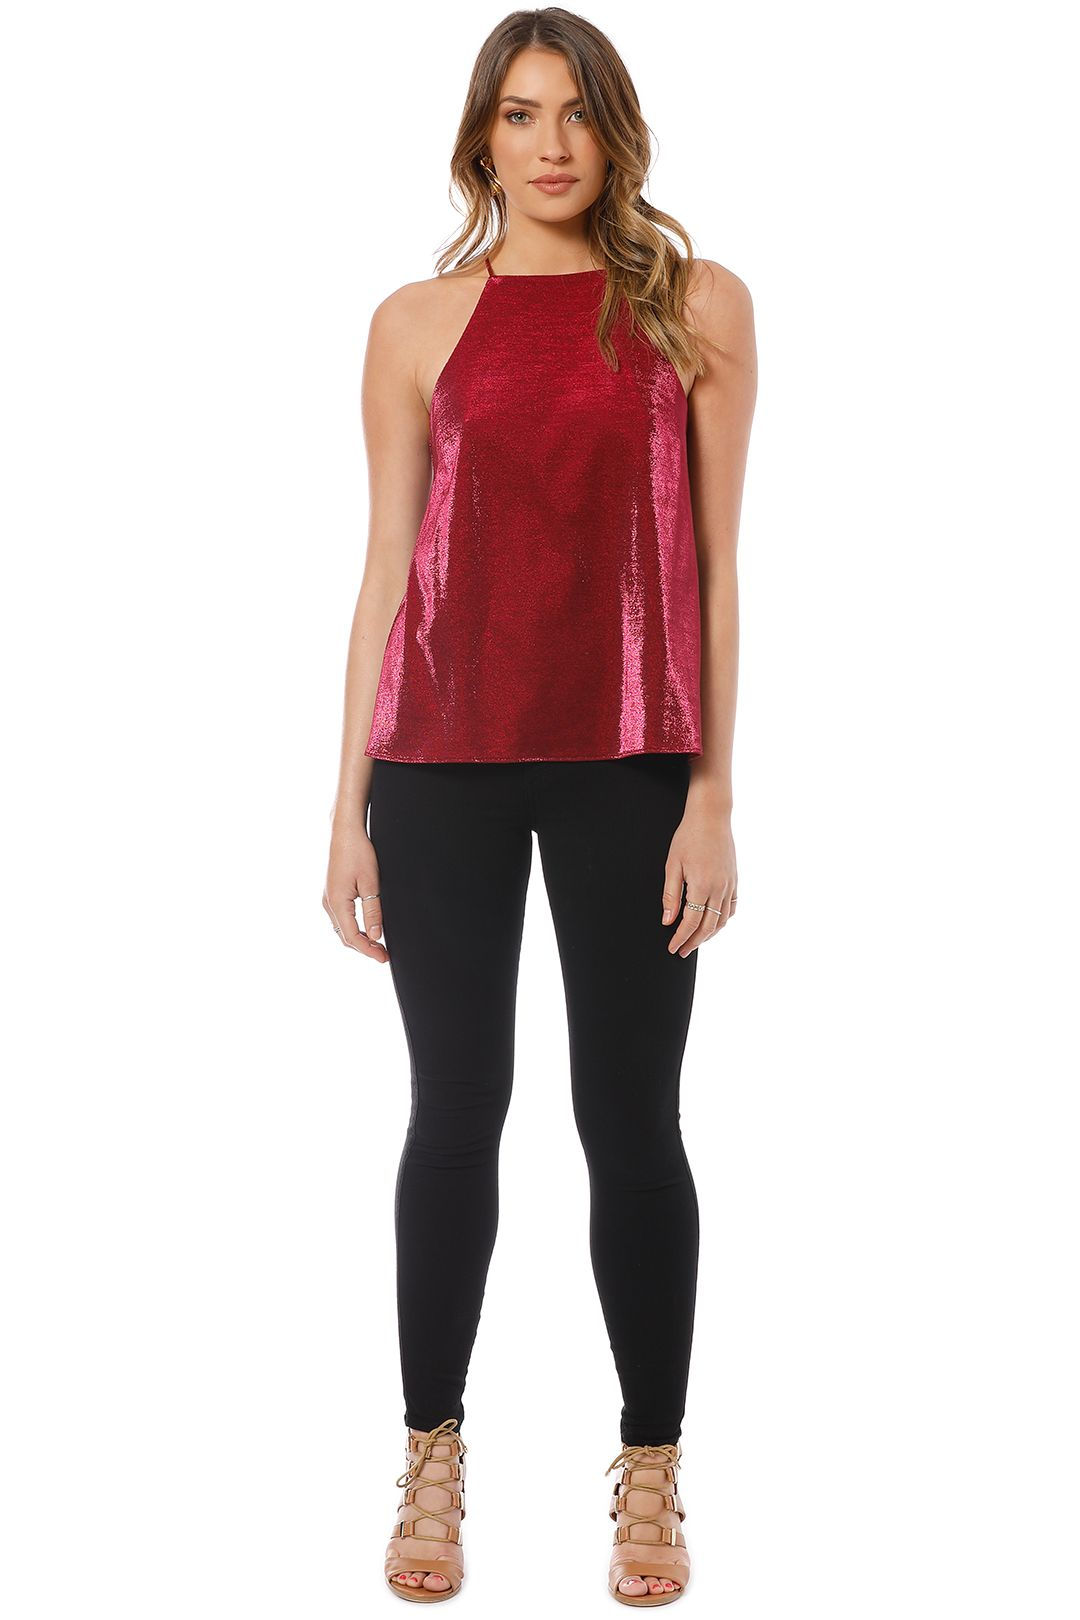 Camilla and Marc - Opasidy Top - Red - Front